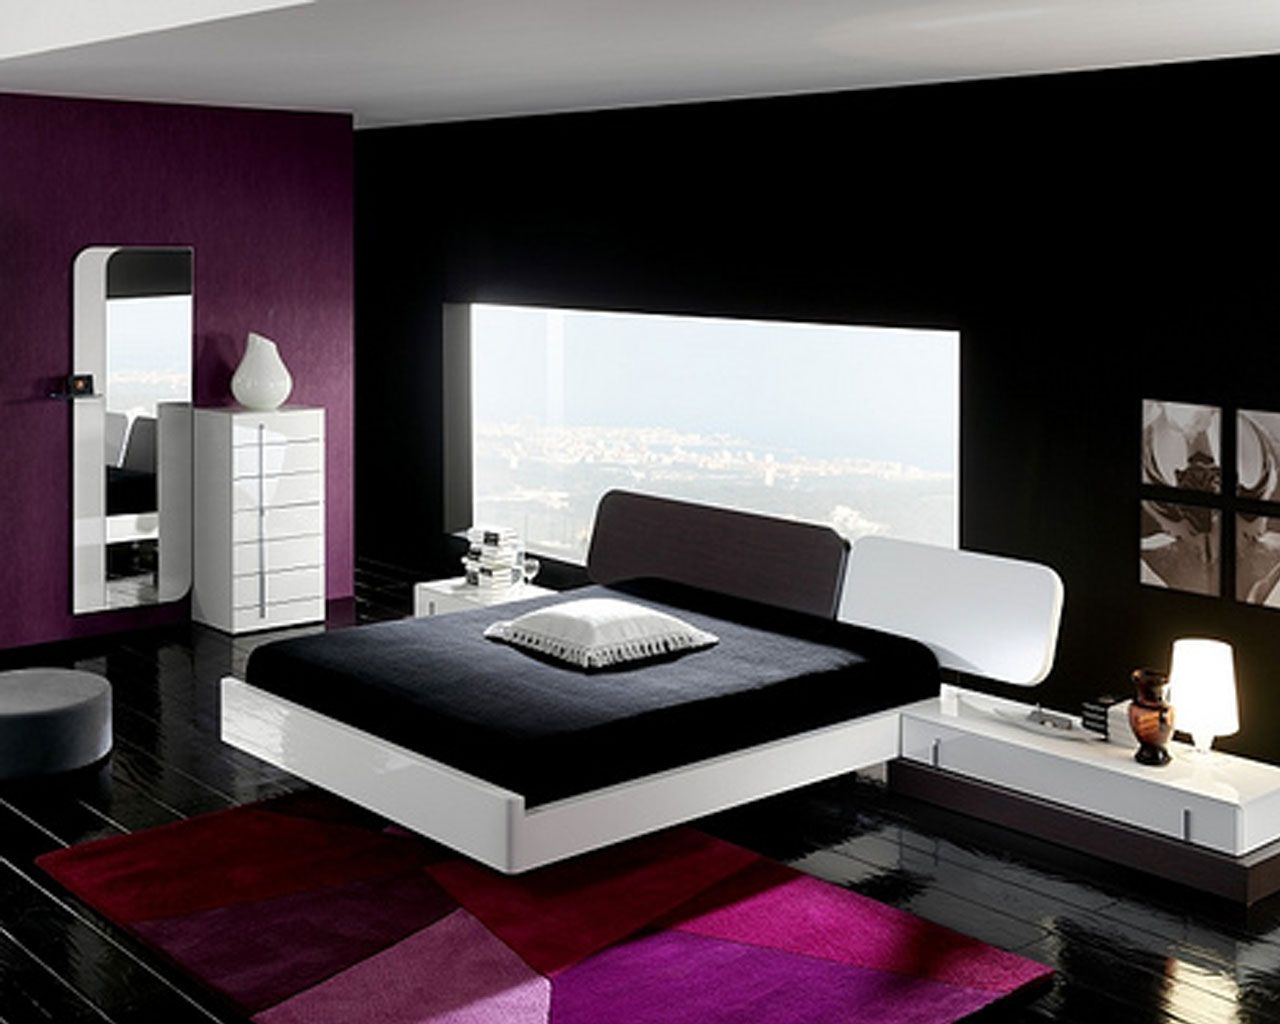 Elegant Impression at Black White Bedroom Design Aida Homes